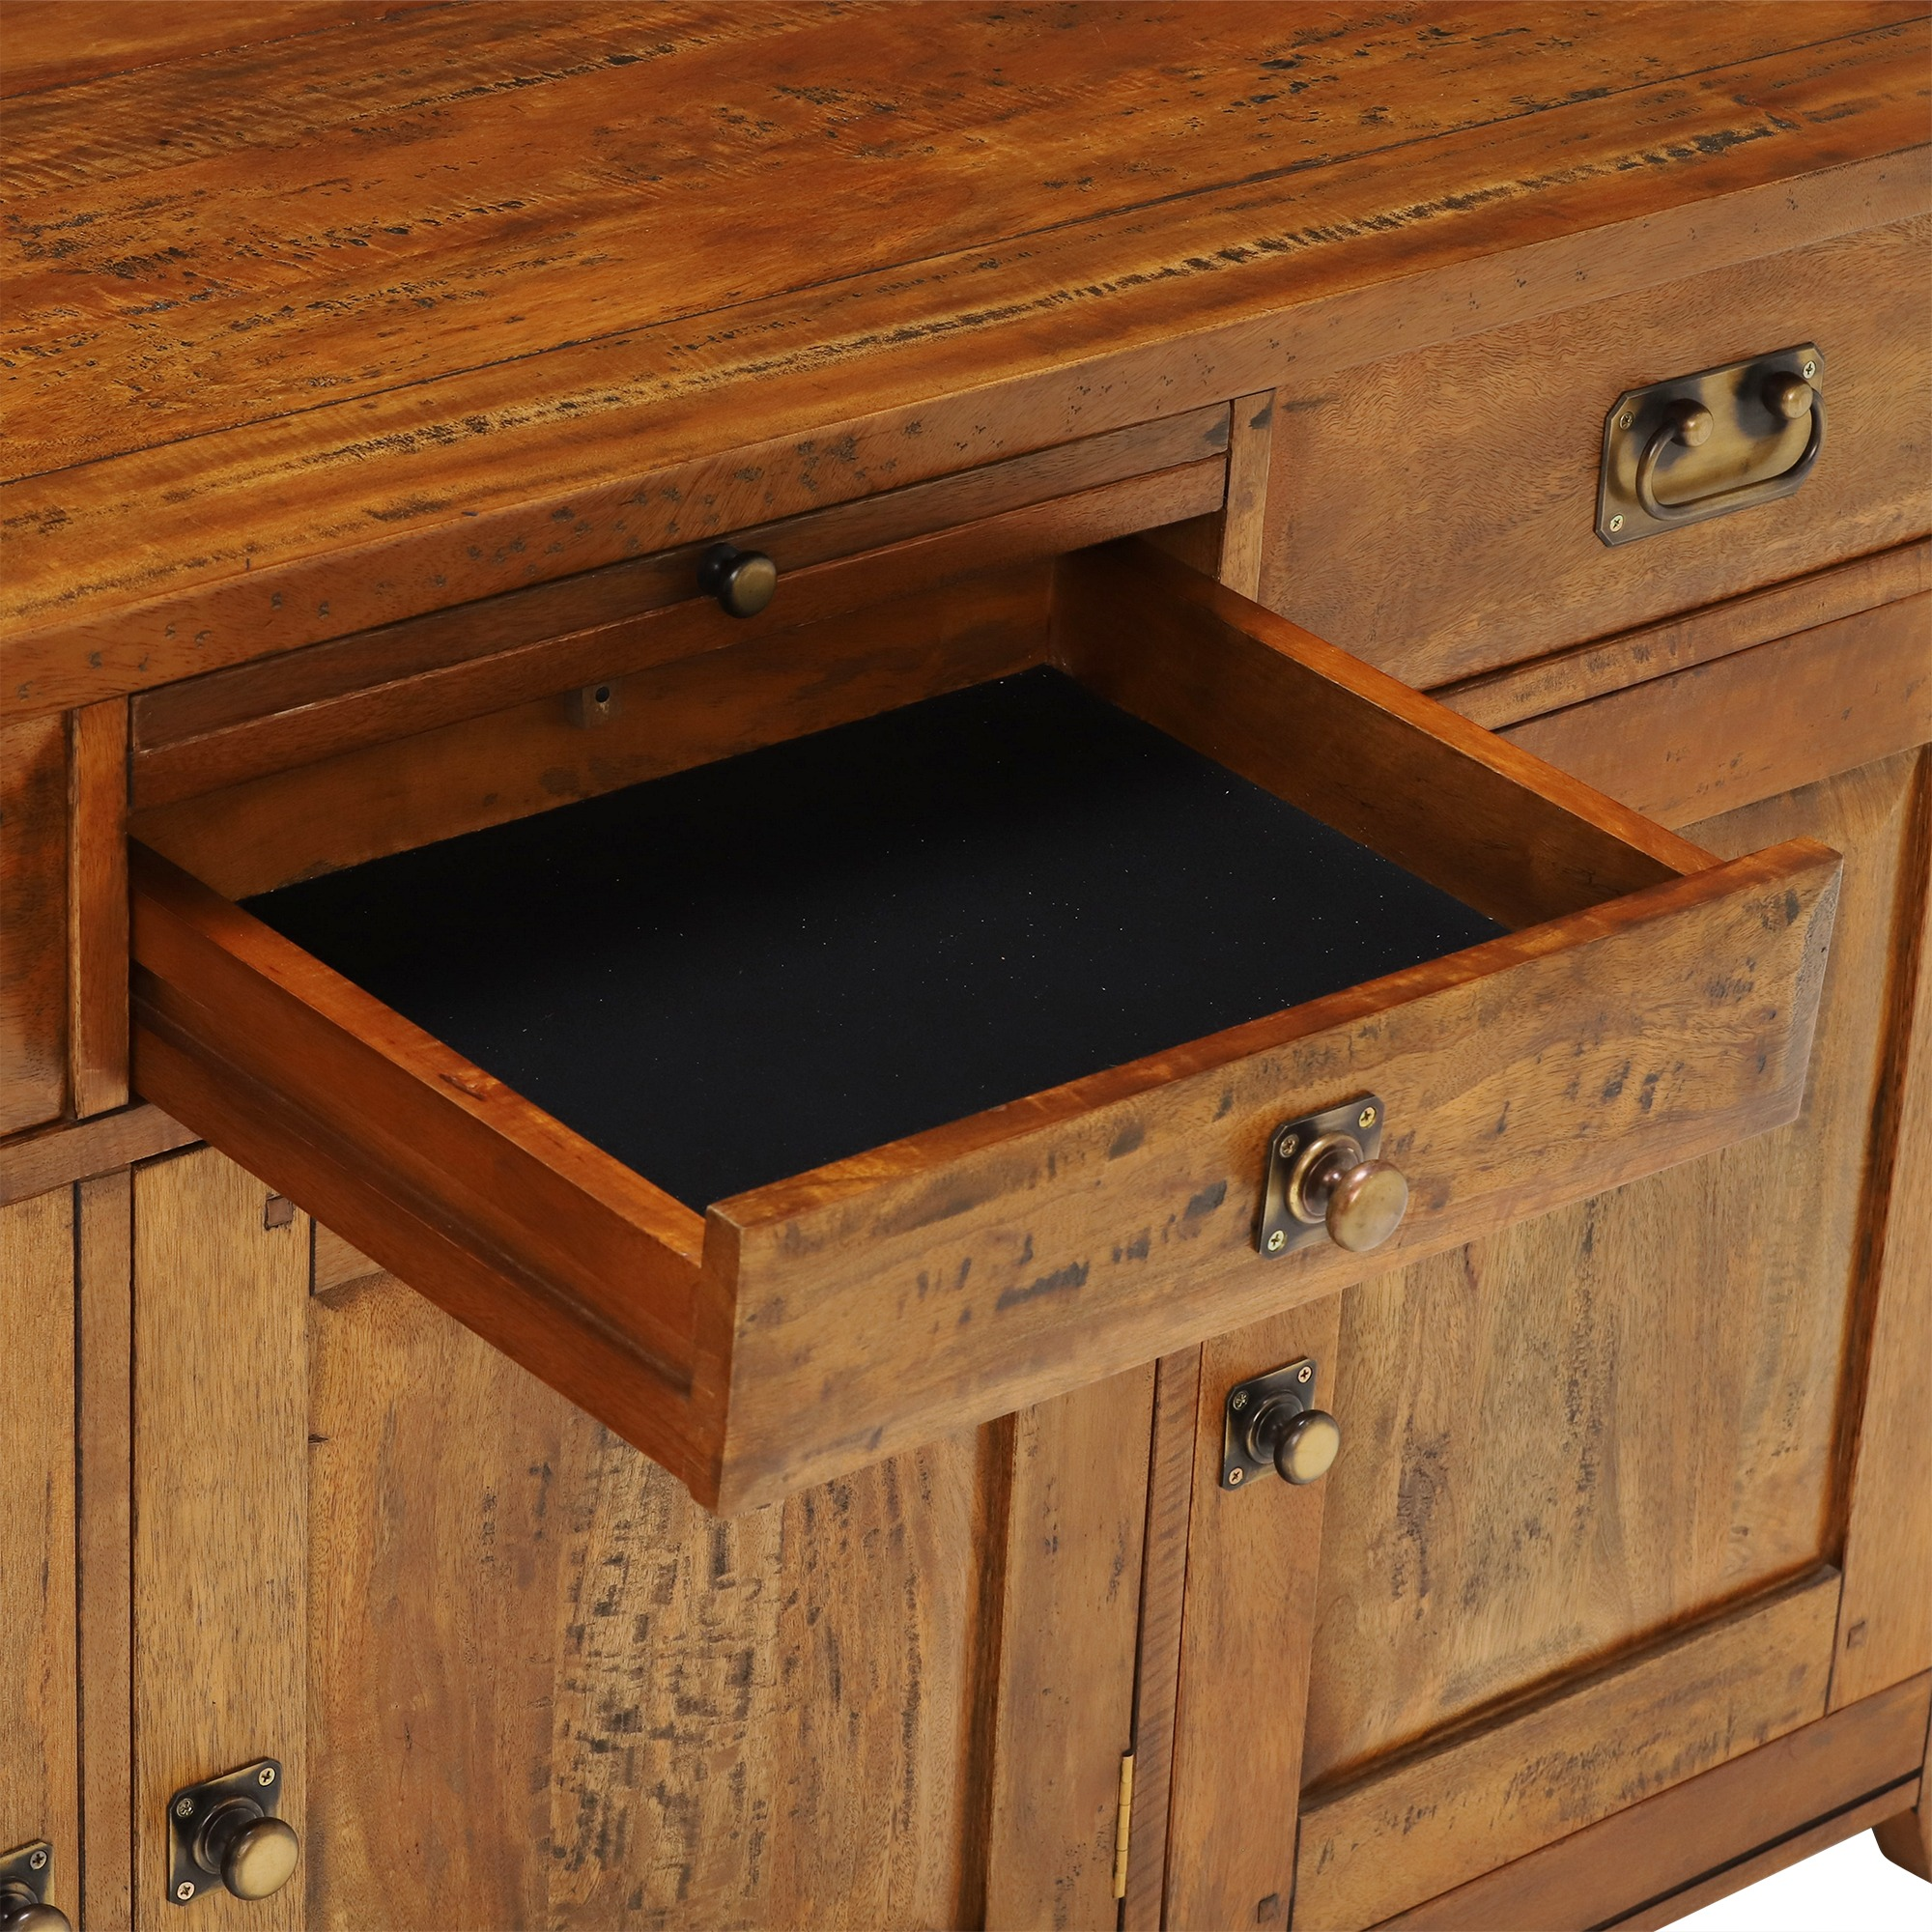 MIDDLE DRAWER CLOSE UP